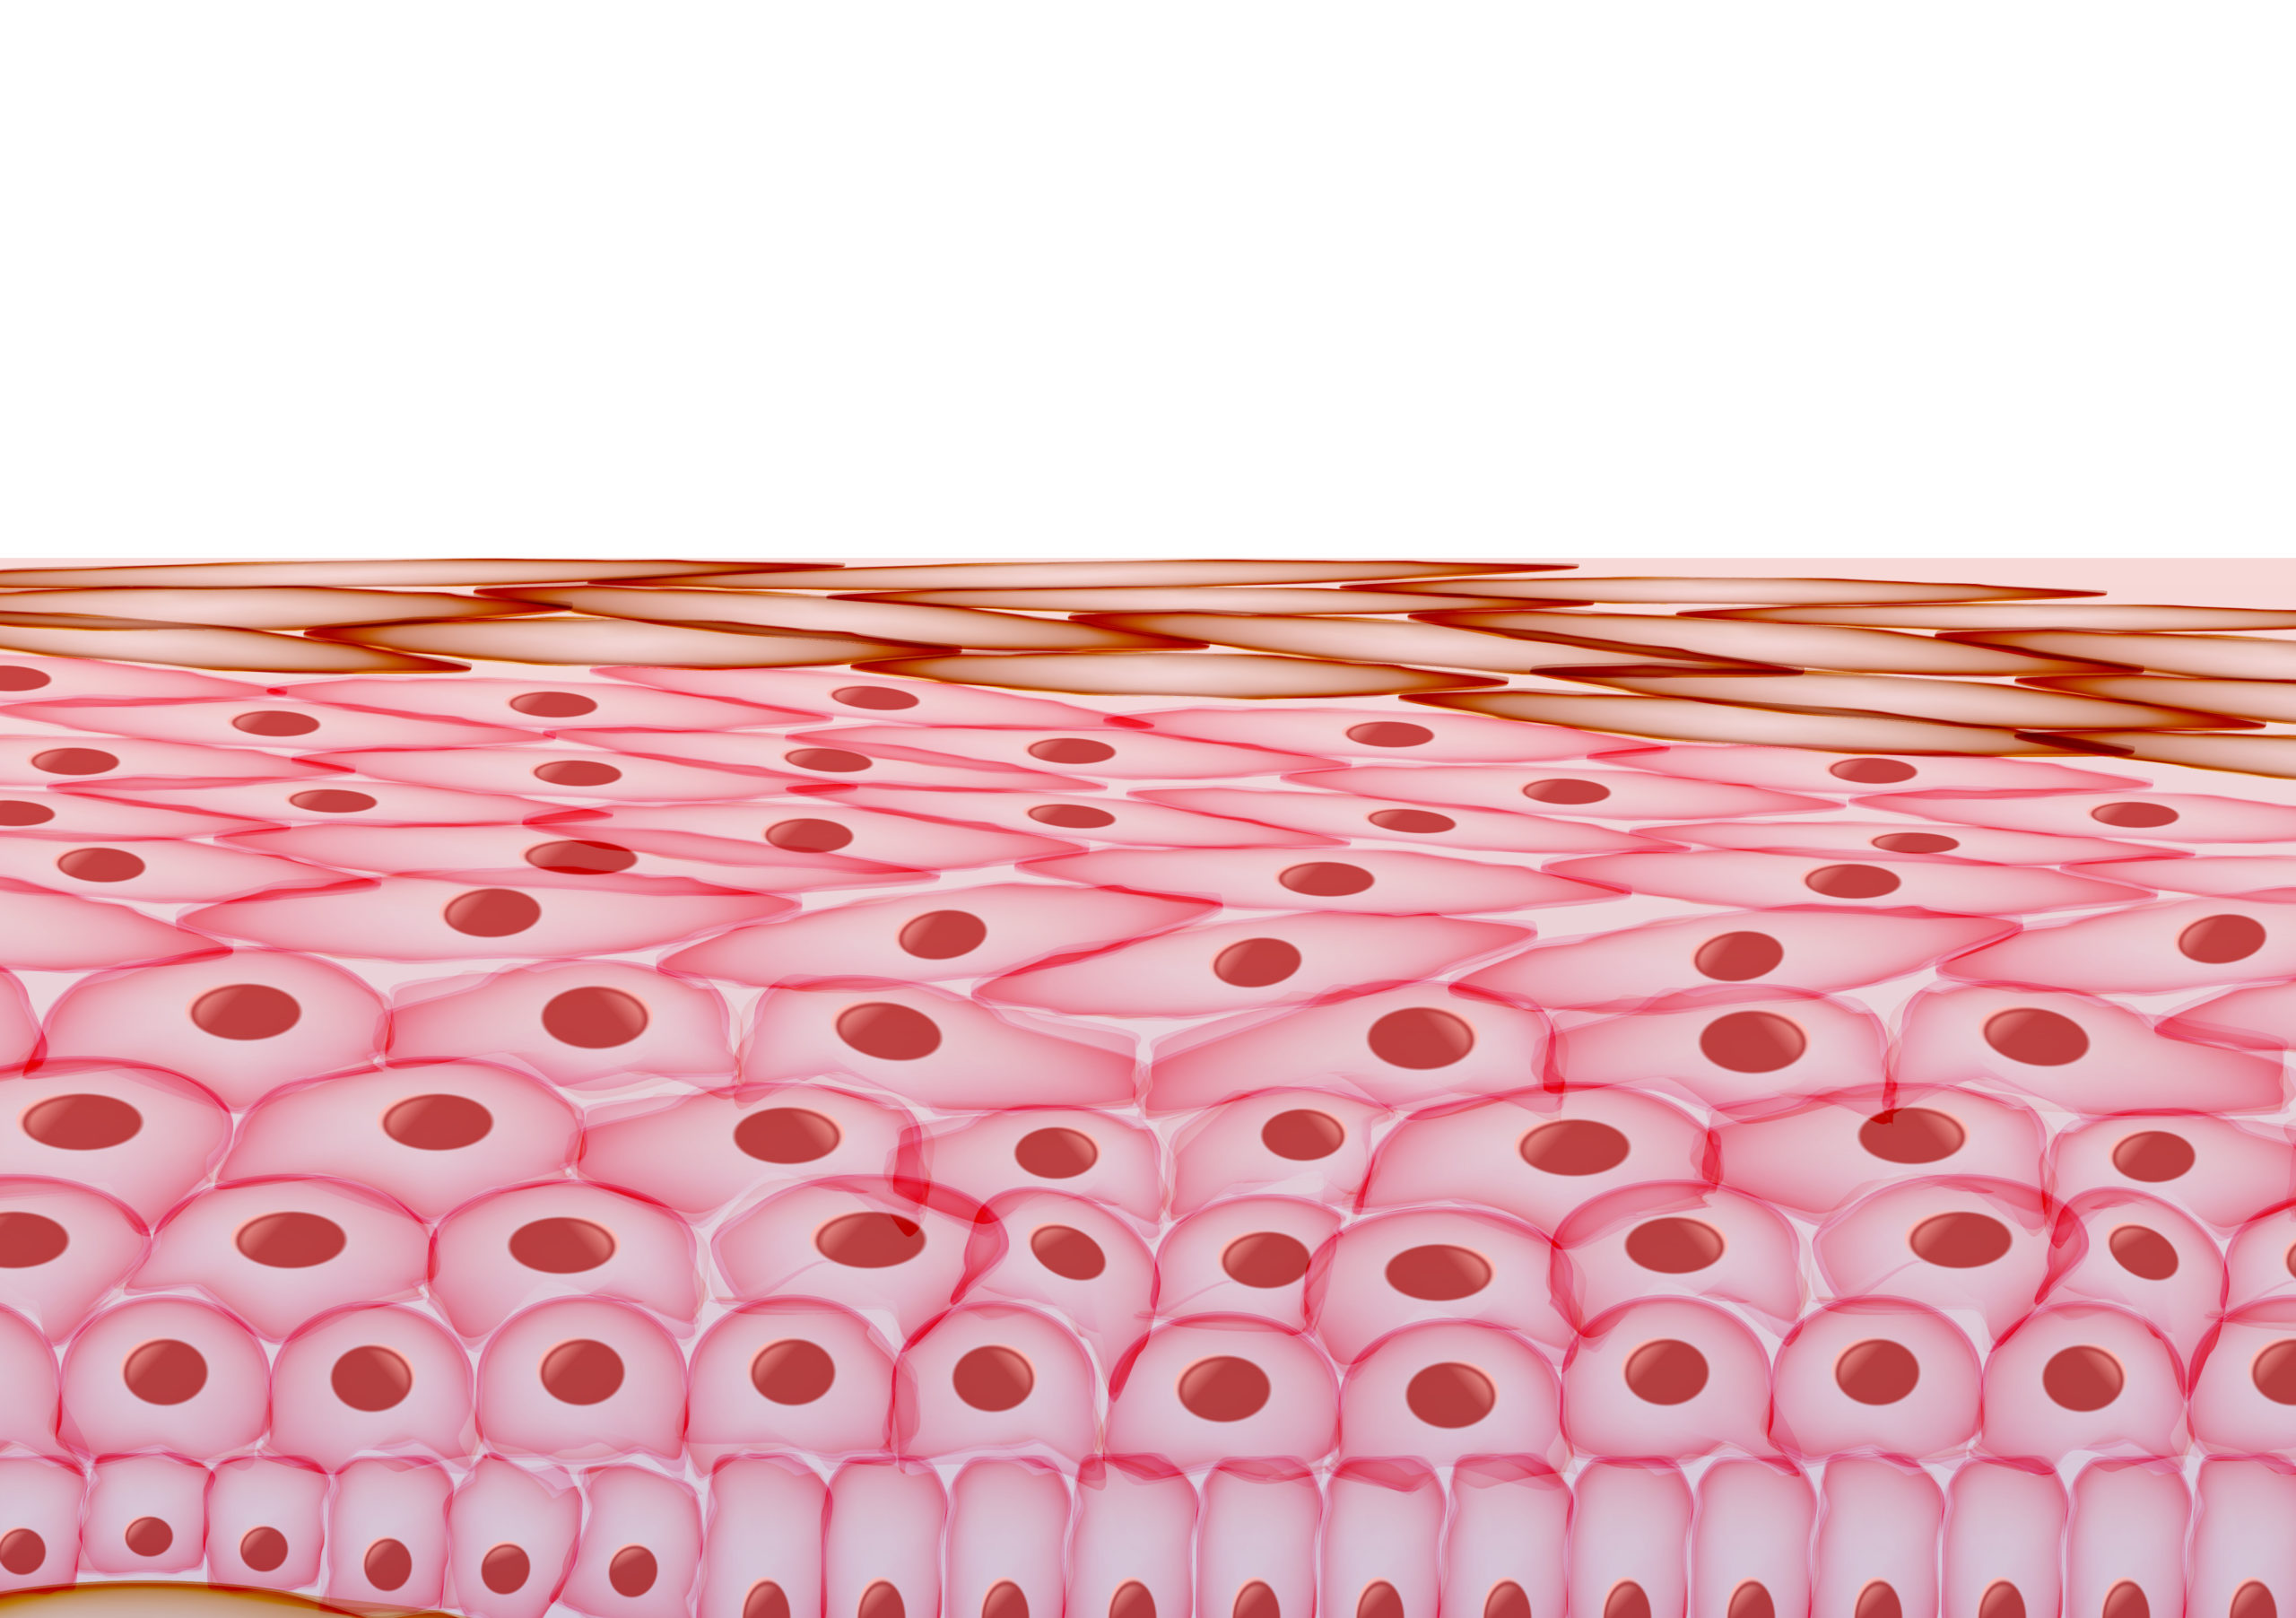 The morphology of keratinocytes changes as they differentiate